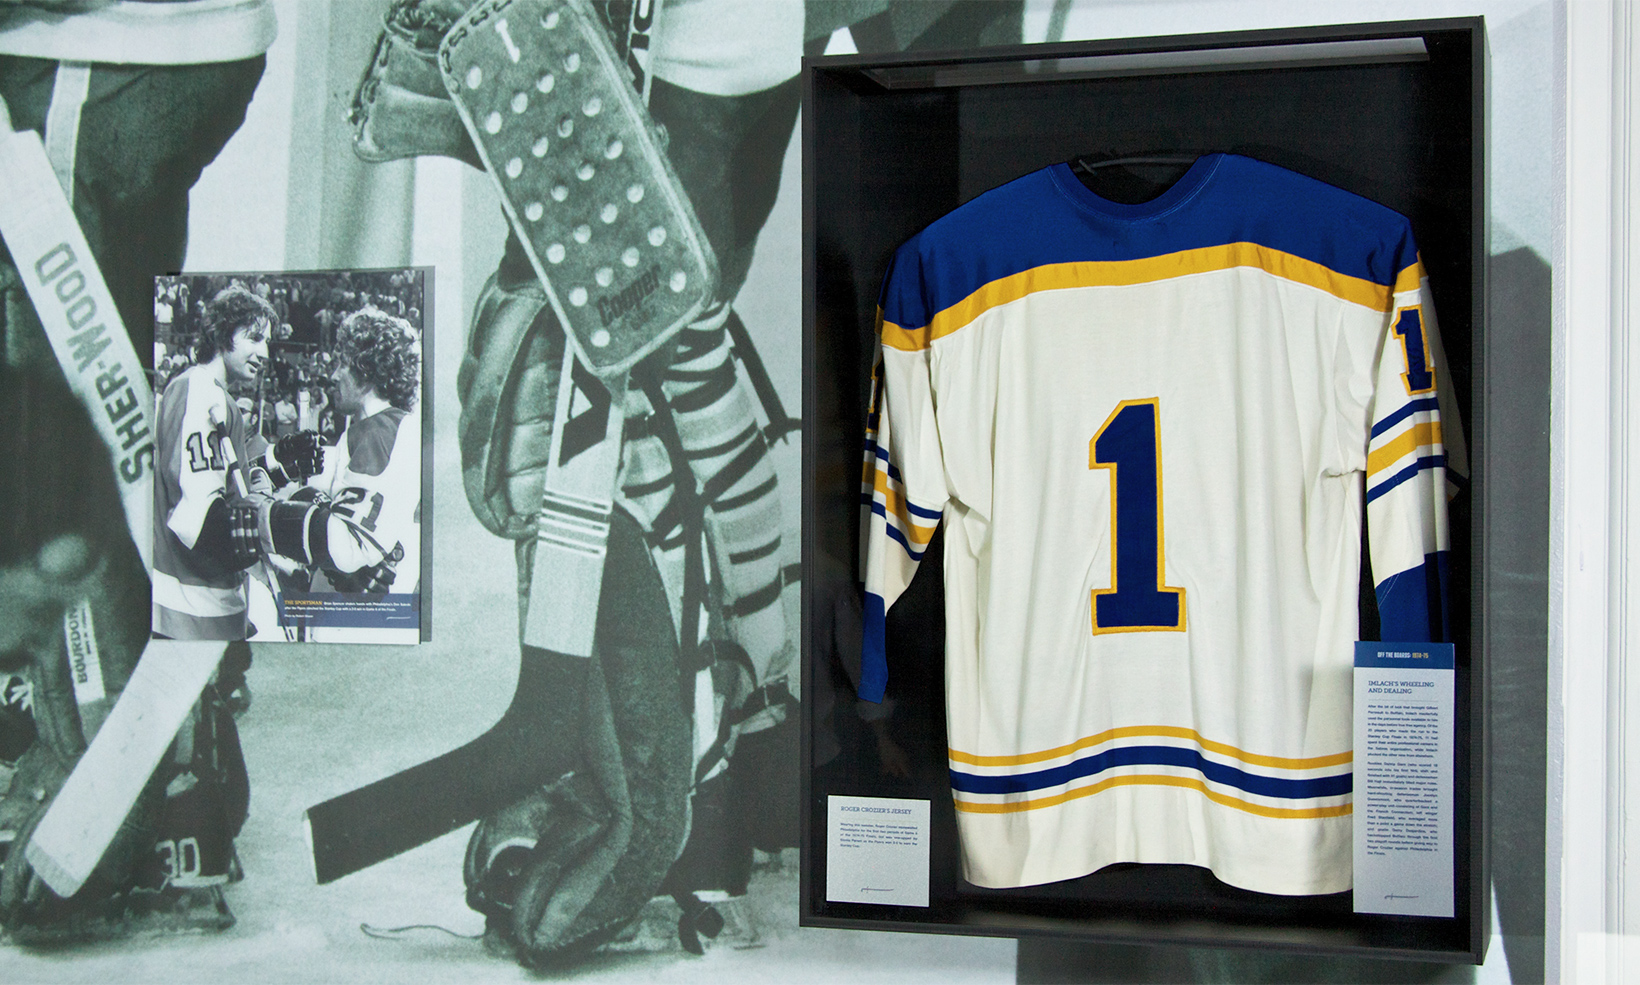 One of the display cases in the Forging A Connection exhibit contains goalie Roger Crozier's #1 jersey